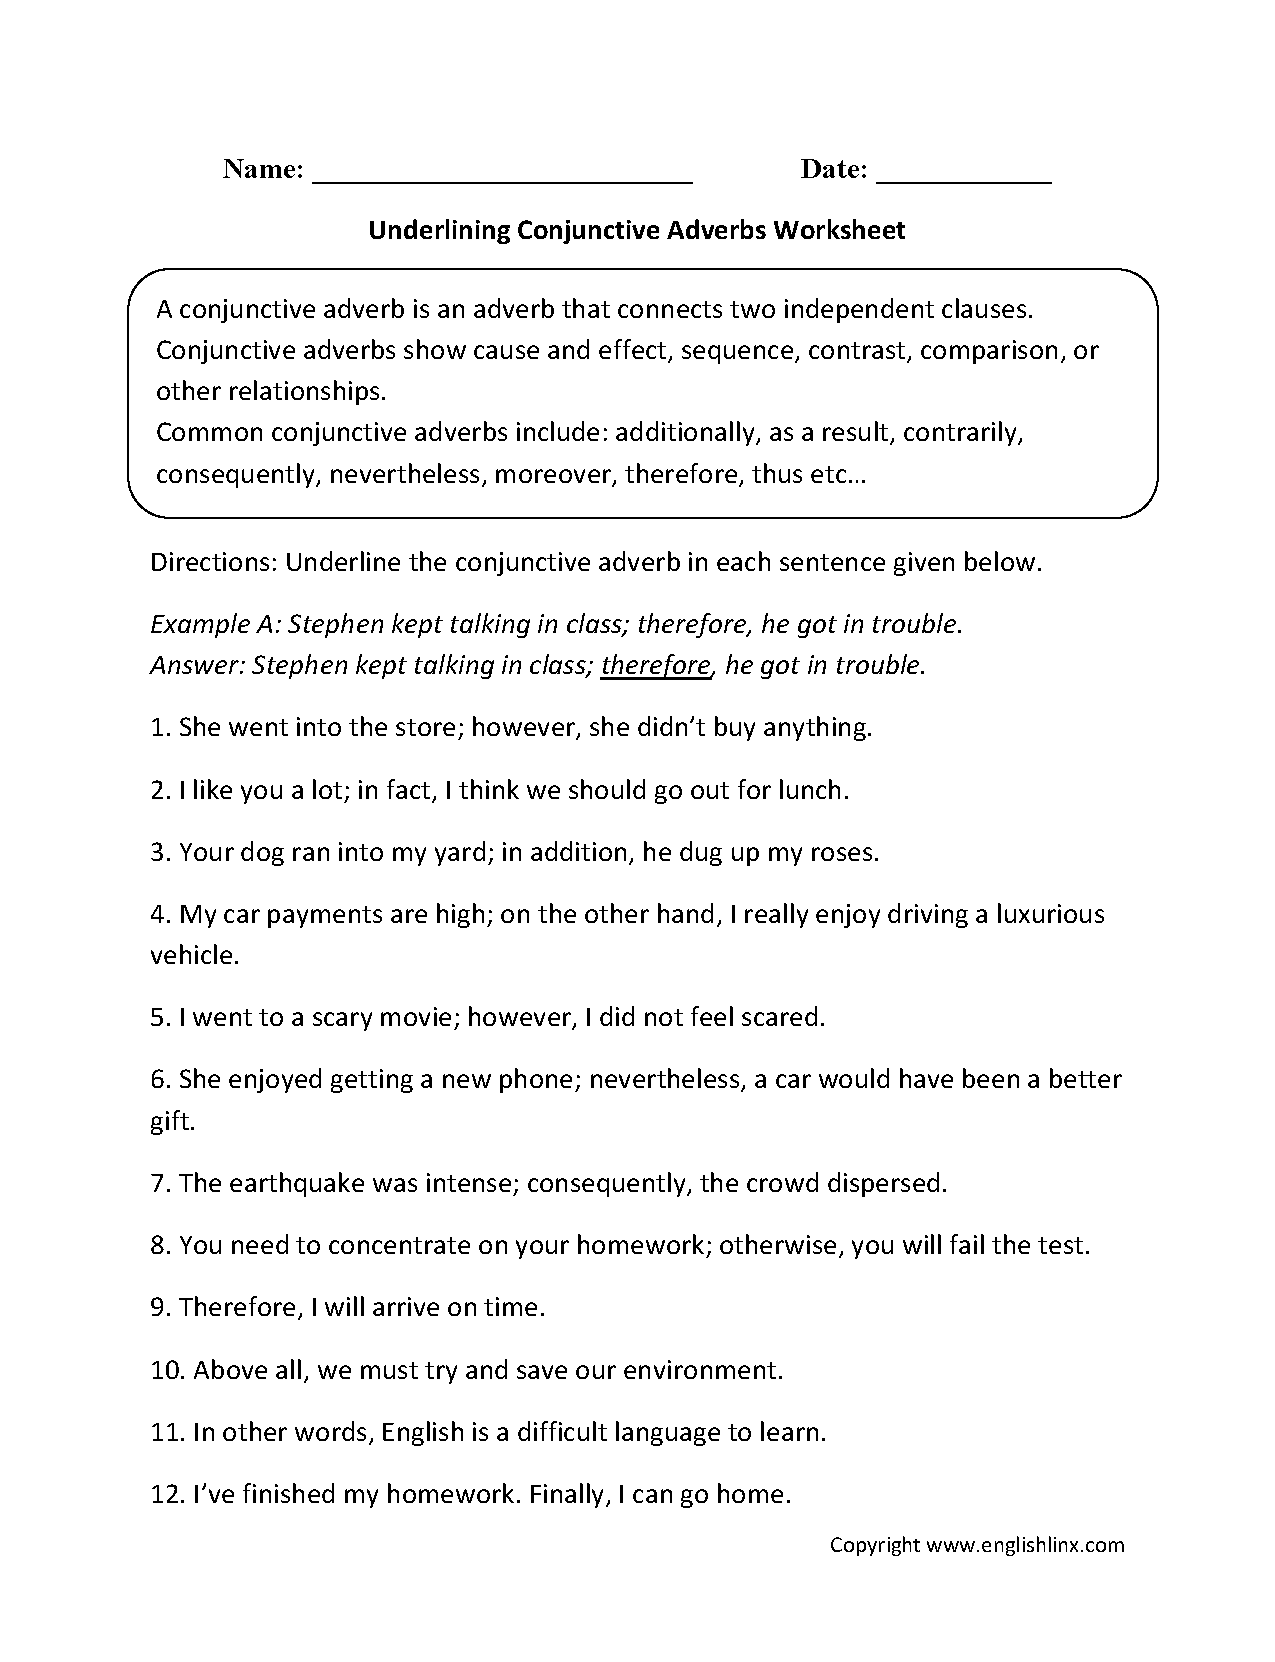 Worksheets Adverb Worksheets 5th Grade underlining conjunctive adverbs worksheet tss pinterest this conjunctions directs the student to identify and unerline adverb in each given sentence